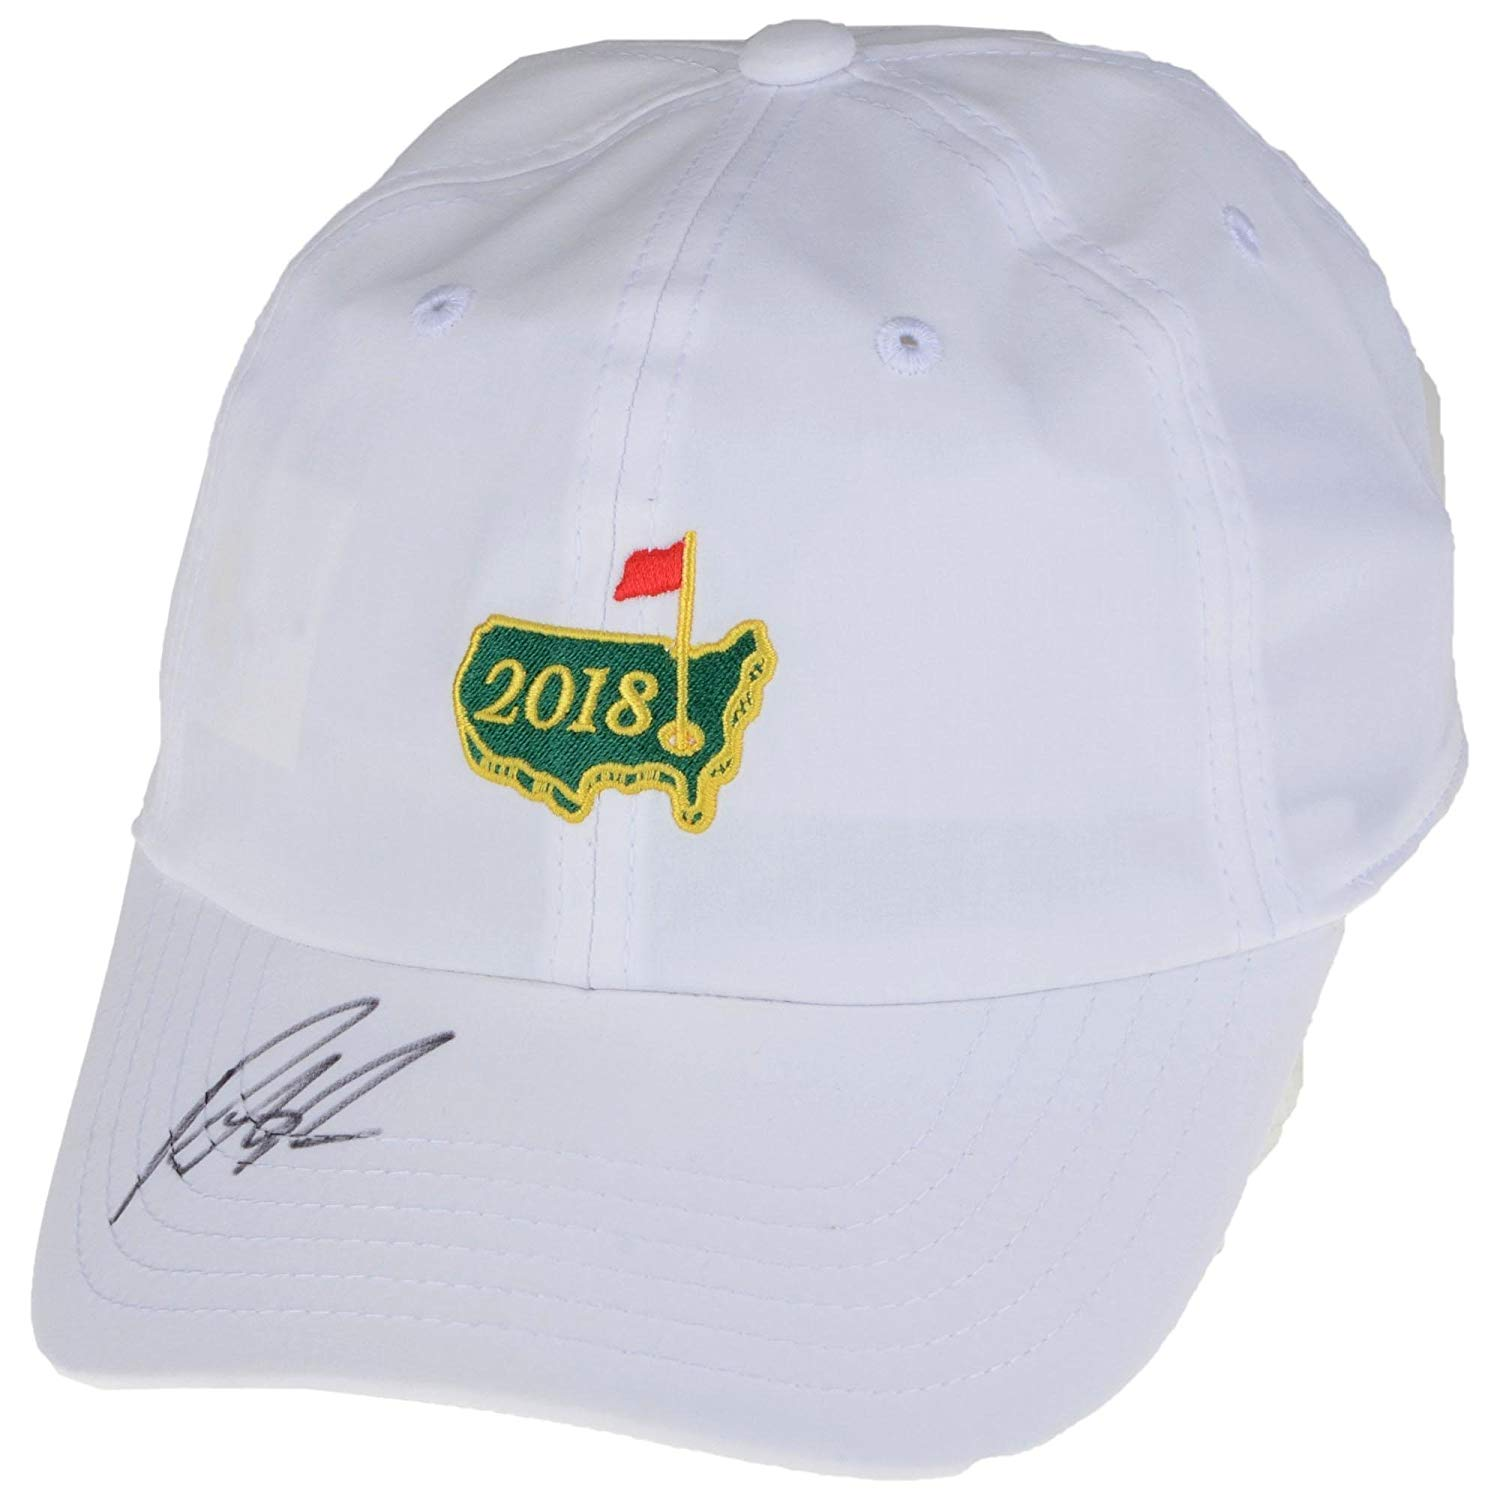 f69ddf69b092d6 Get Quotations · Patrick Reed Autographed 2018 Masters Golf Hat - JSA  Certified - Autographed Golf Hats and Visors